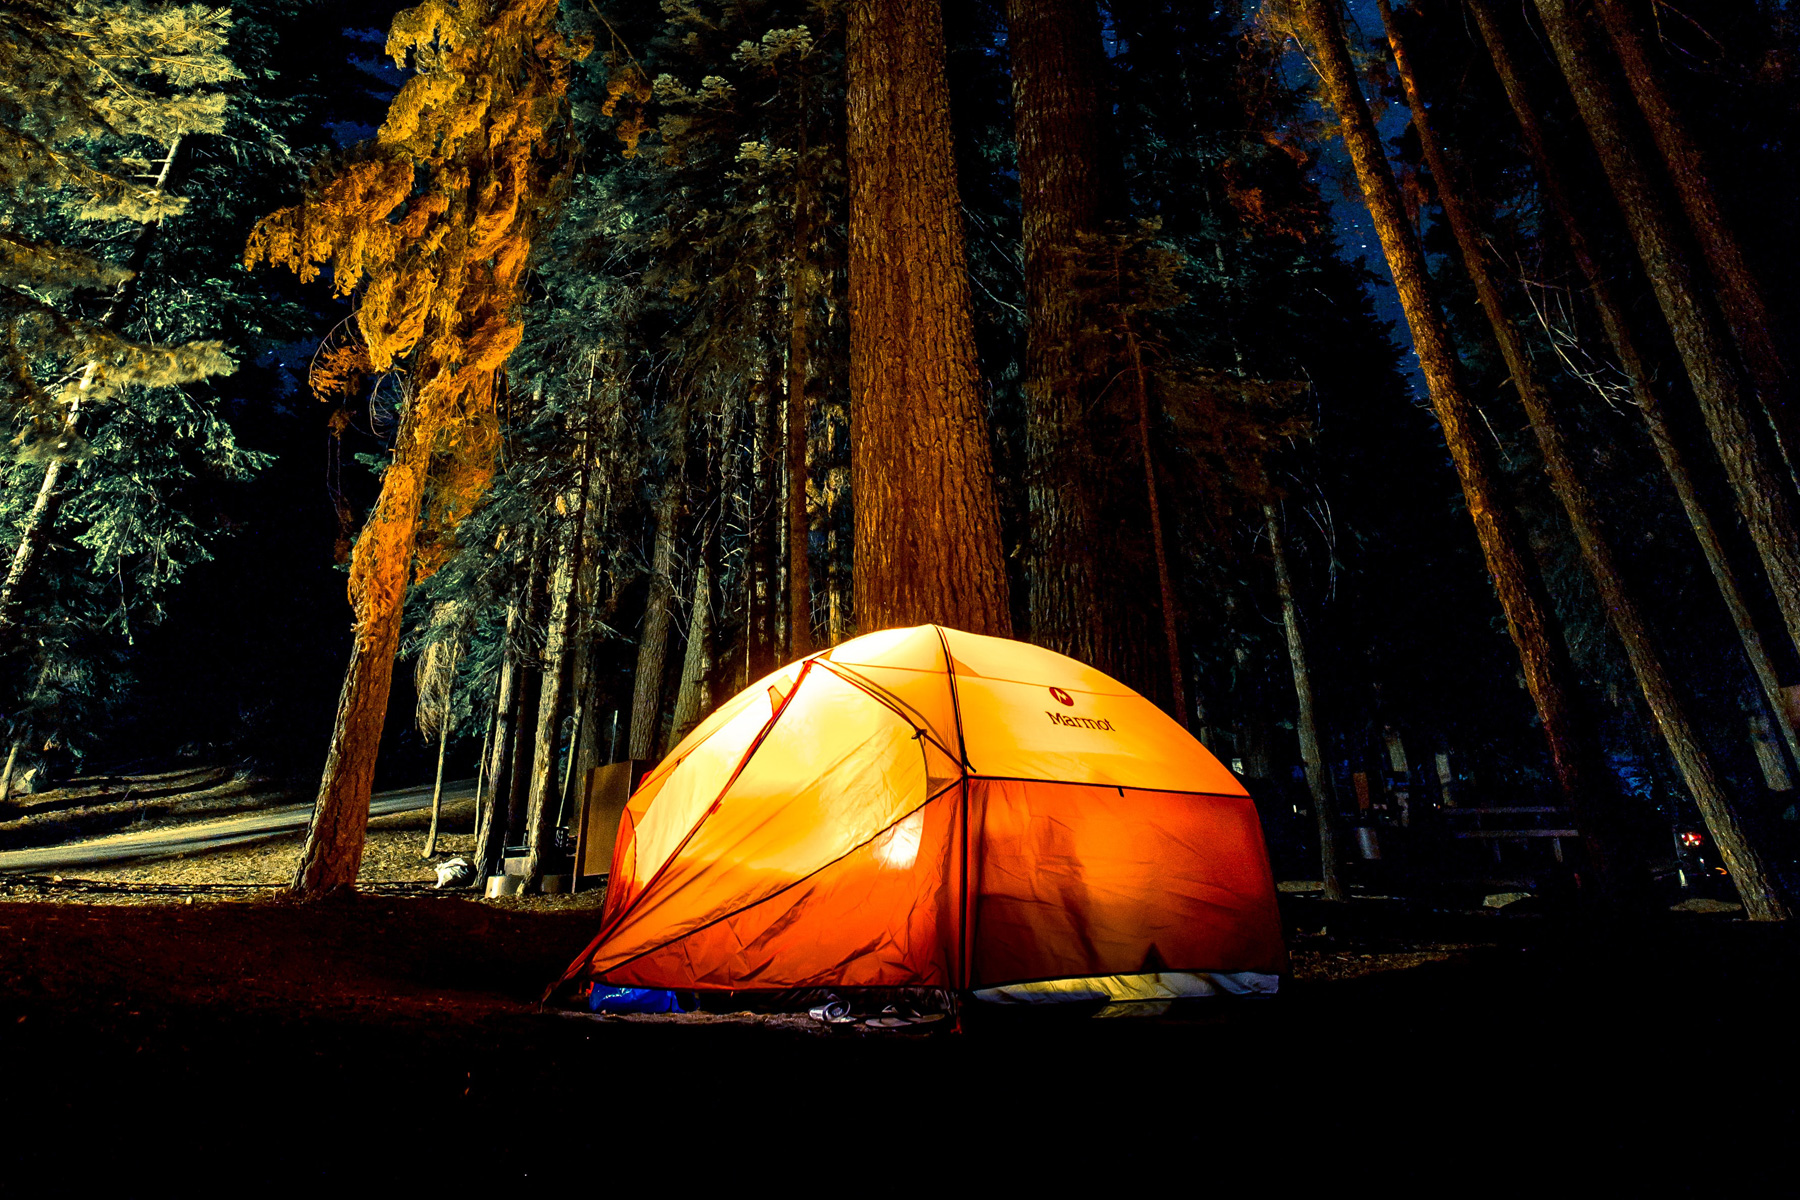 Ornage tent with light on at night next to a forest of tall trees